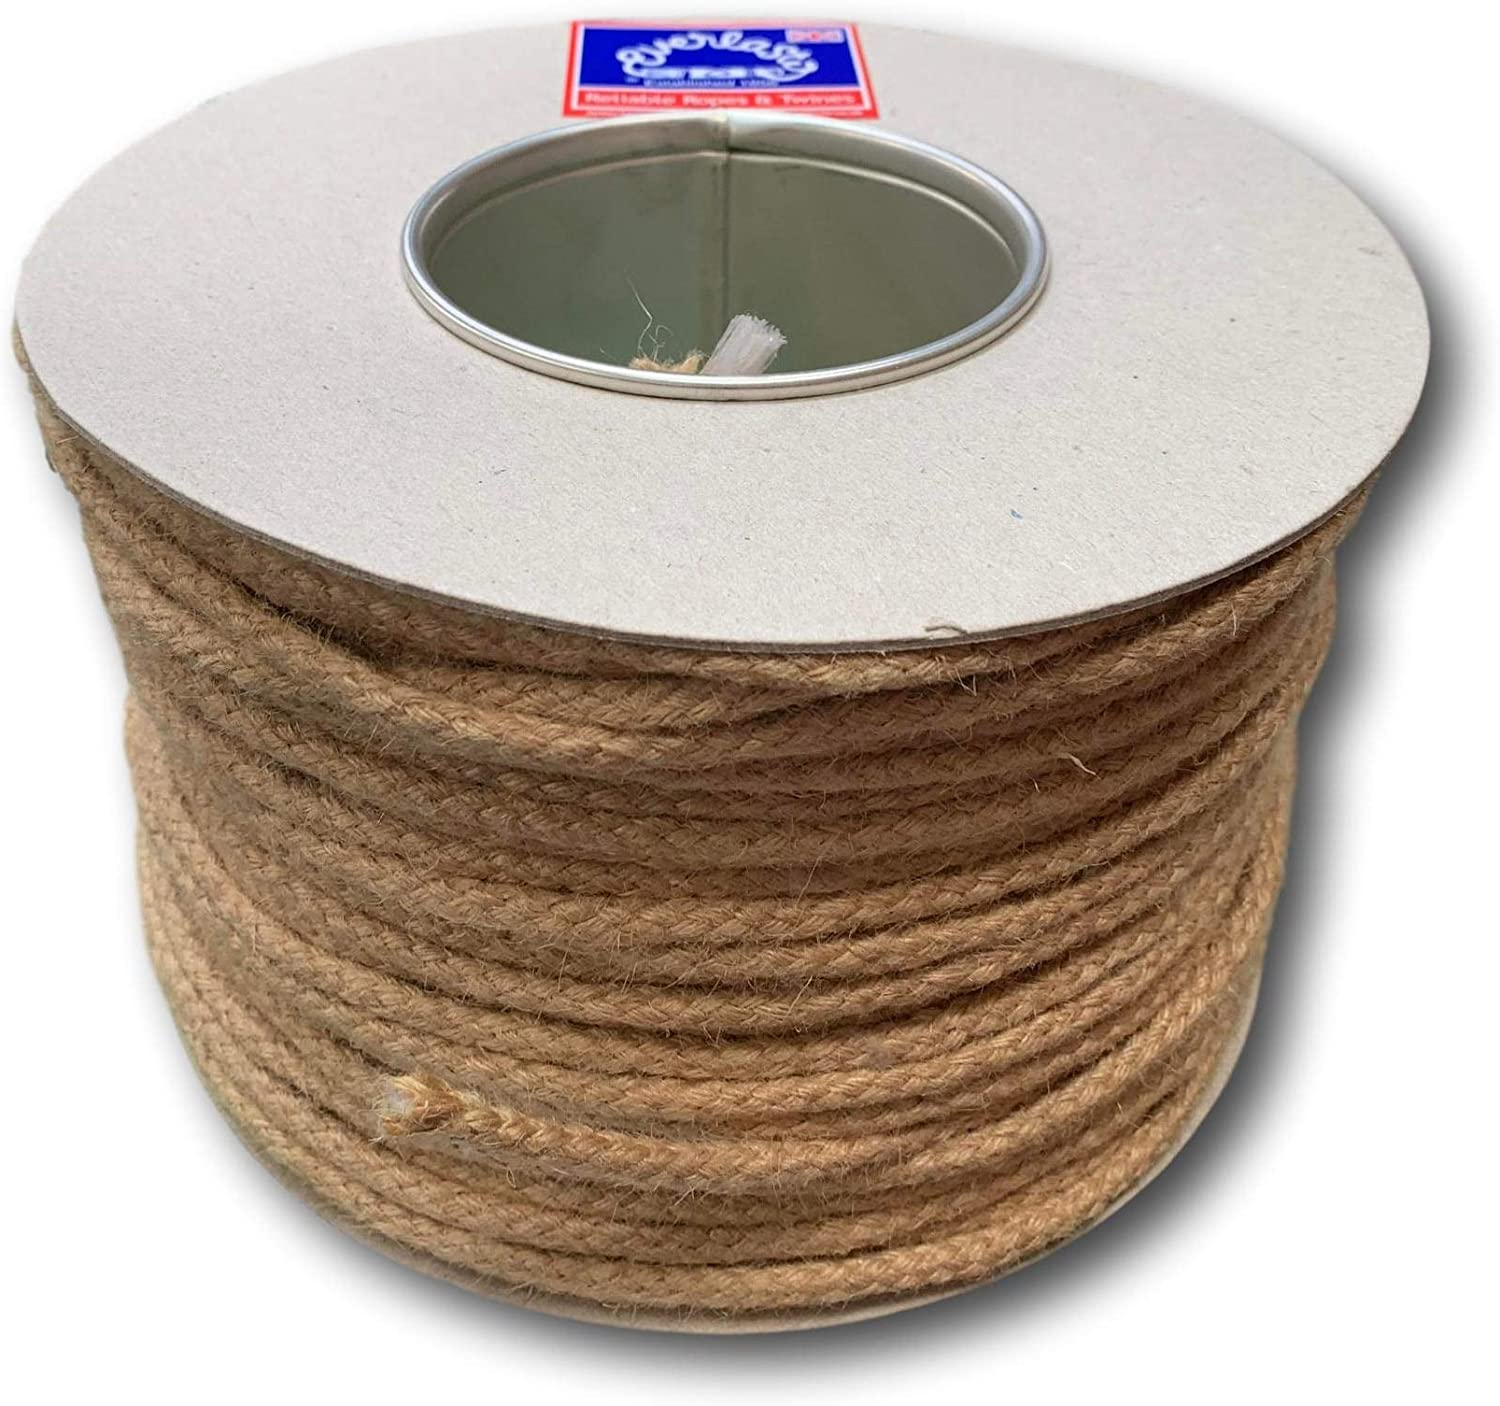 x 10M 6.5mm Everlasto Plaited Jute Sash Cord with Strong Polypropylene Core No.4